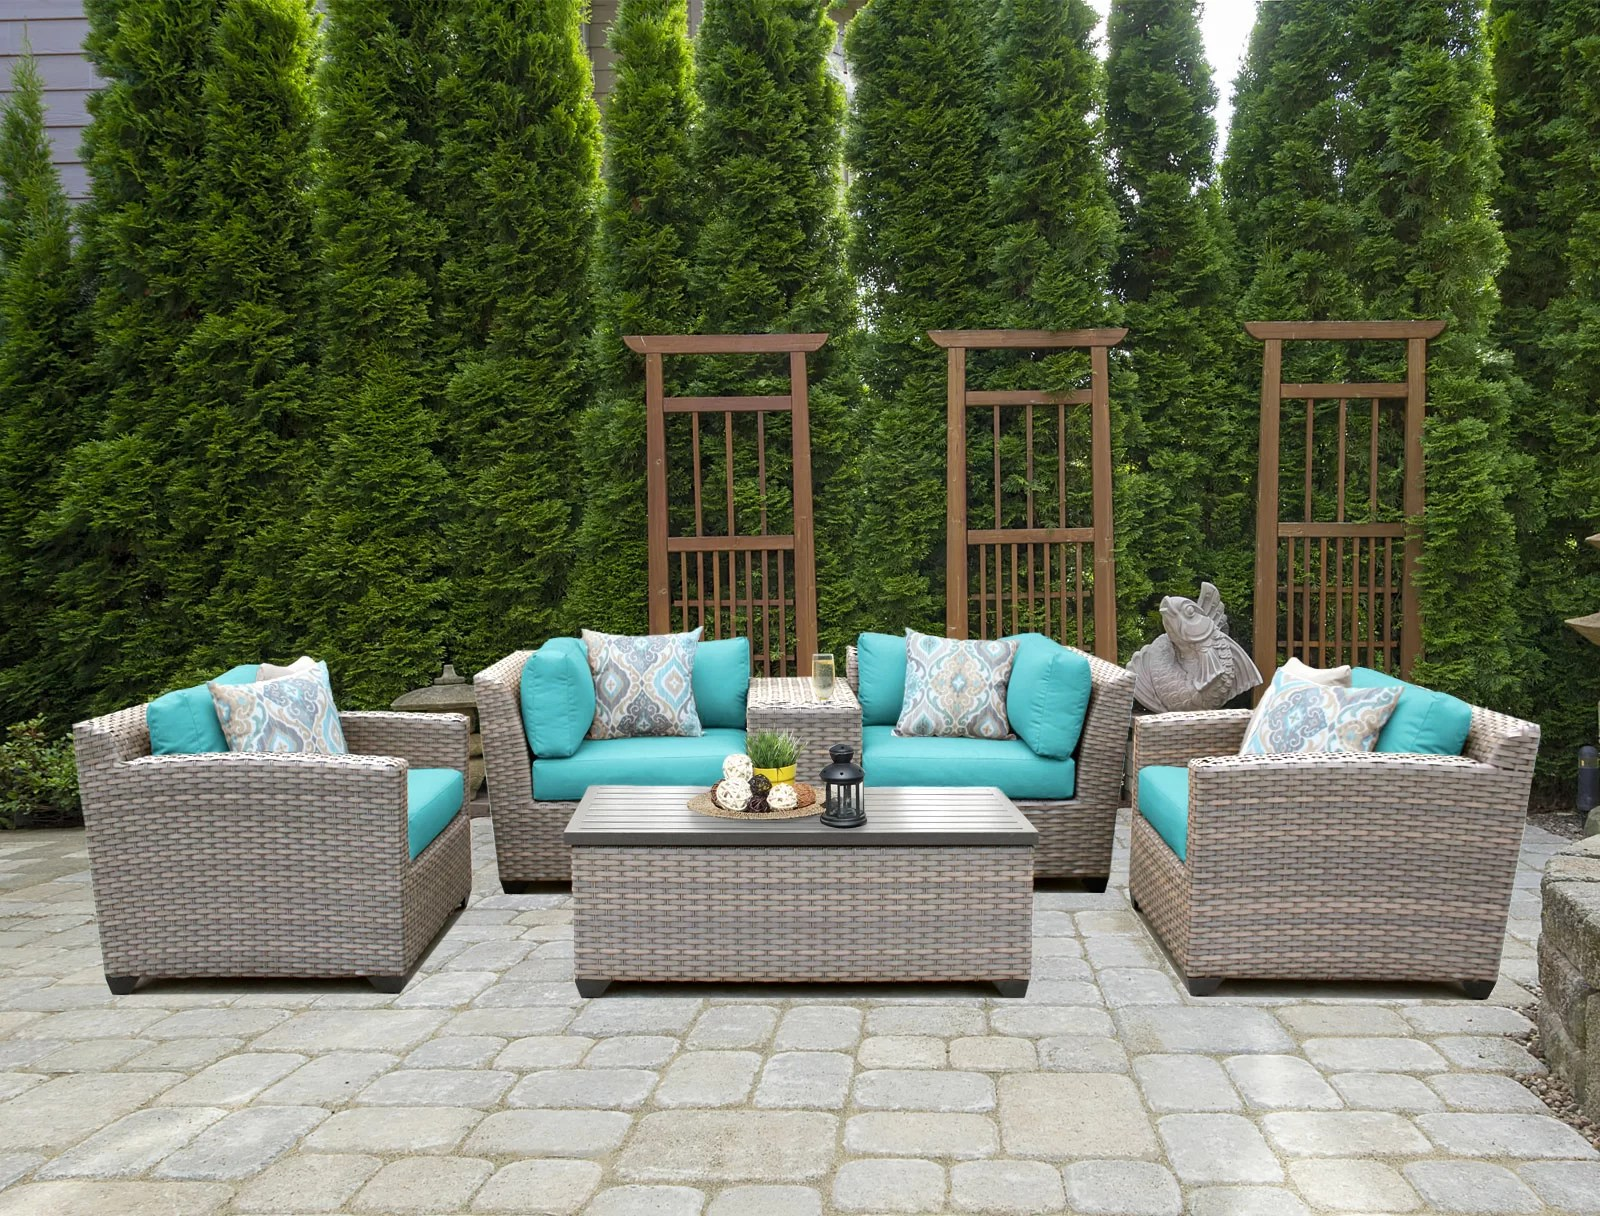 Rattan Sofa Romford 6 Piece Rattan Sofa Seating Group With Cushions